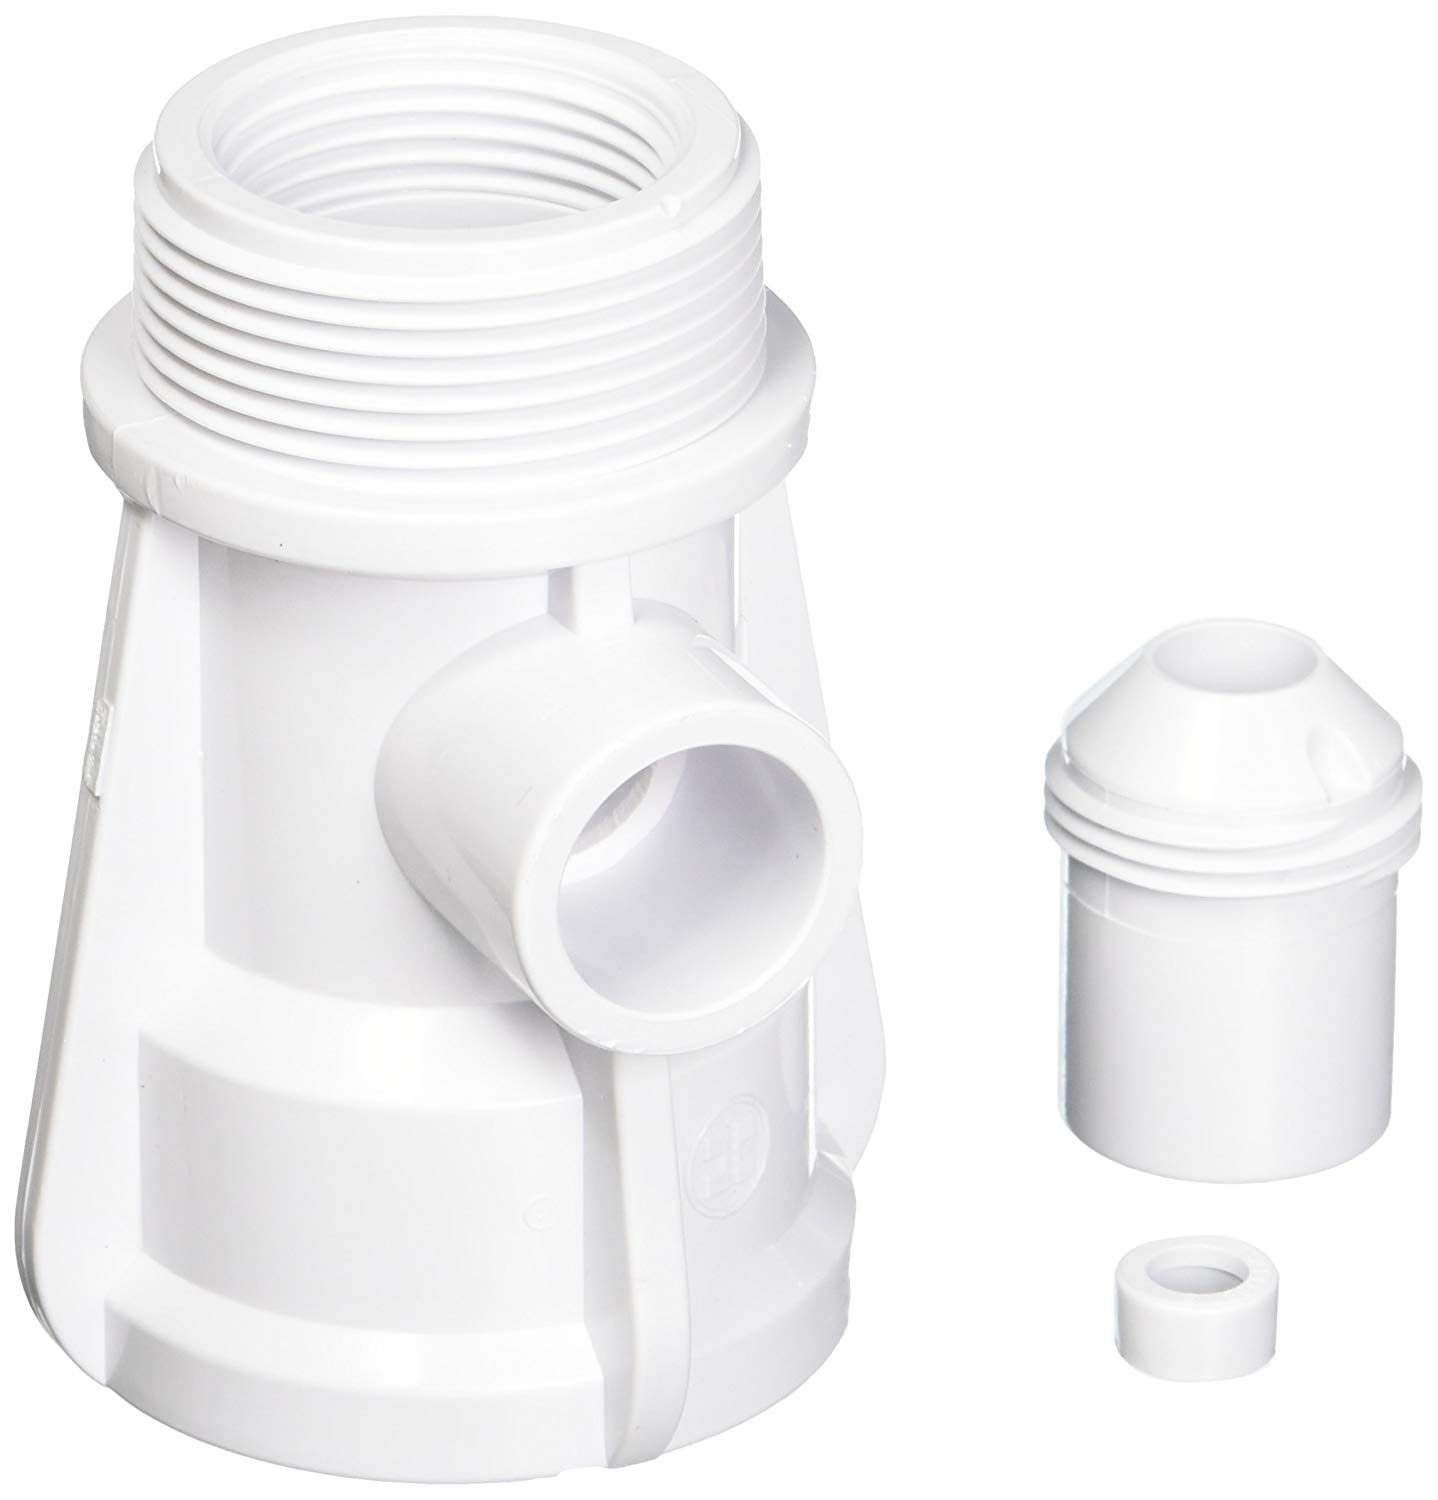 Hayward SP1430 1-1/2-Inch FIP by 1-1/2-Inch MIP Jet-Air Hydrotherapy Fitting